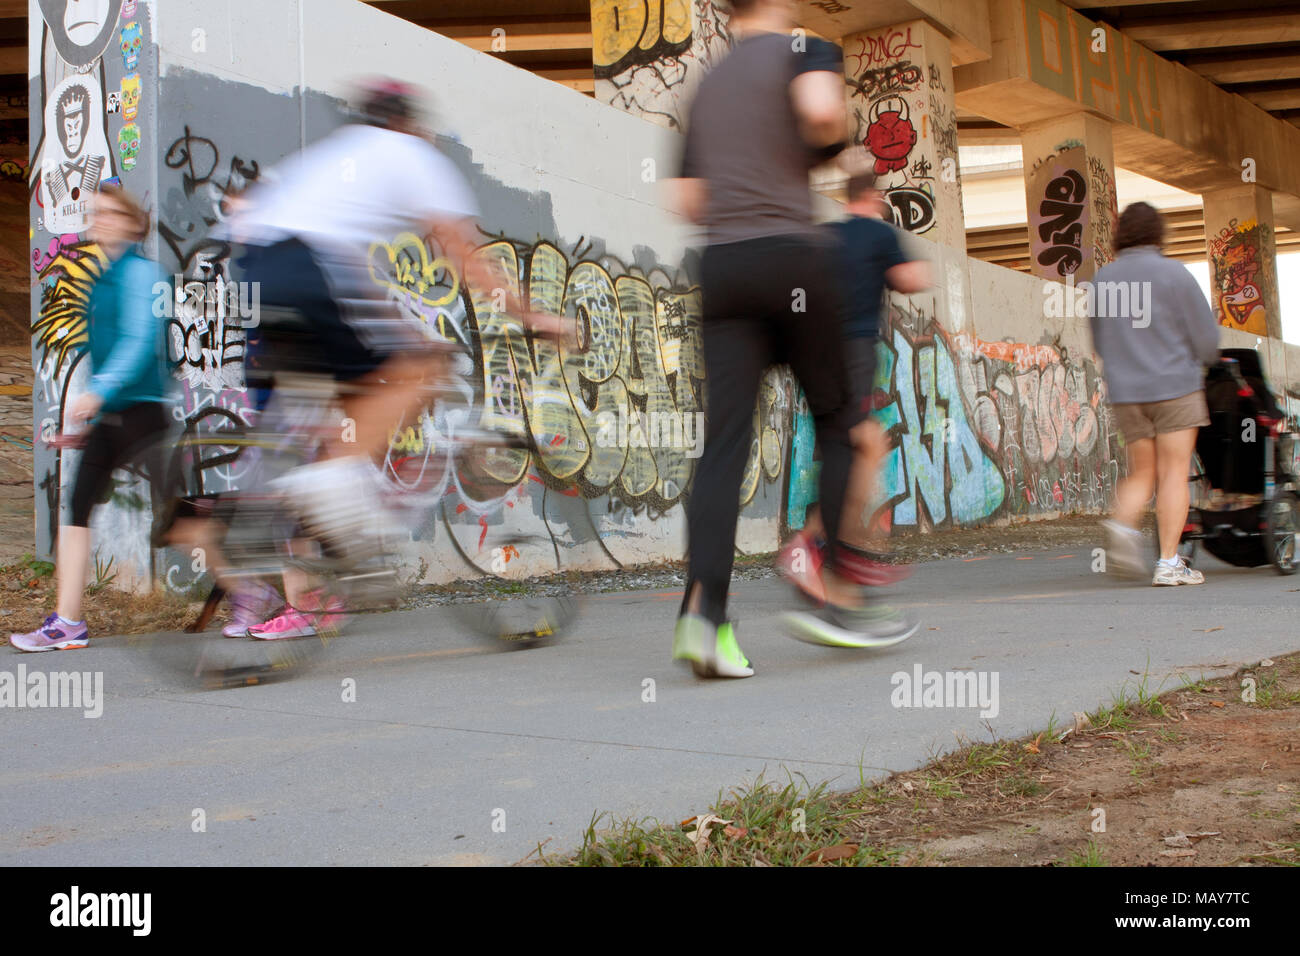 Motion blur of several people exercising along a graffiti covered trail that is part of the Atlanta Beltline, on November 2, 2013 in Atlanta, GA. - Stock Image